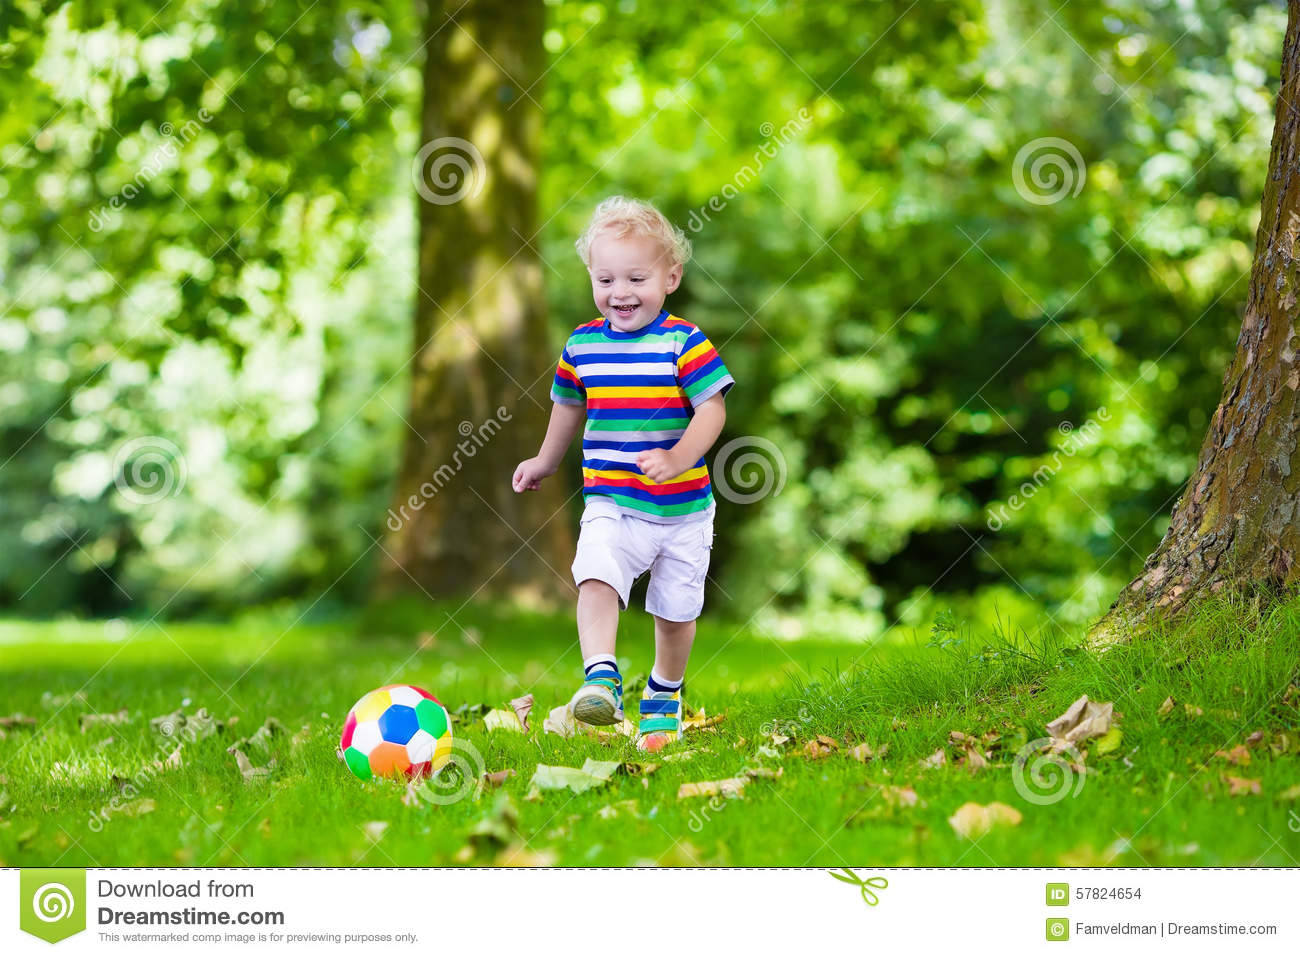 child playing european football outdoors in school yard kids play